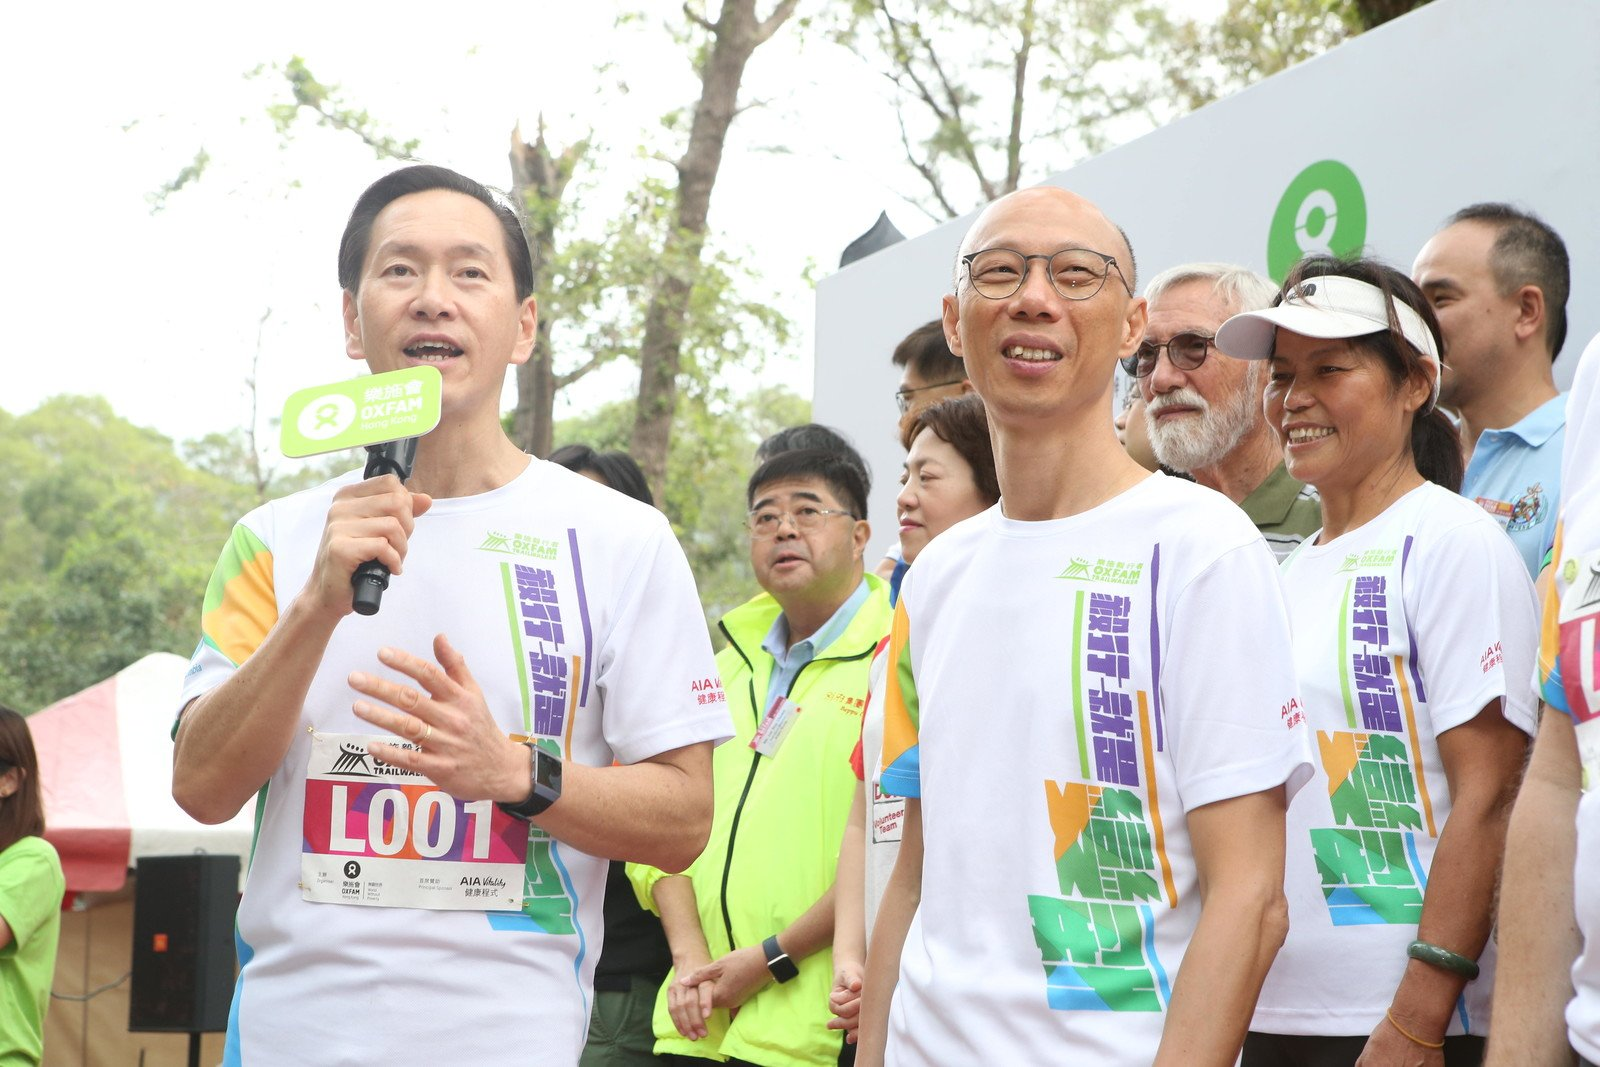 Bernard Chan, Oxfam Trailwalker Advisory Committee Chair, delivering the welcome speech at the Oxfam Trailwalker 2018 kick-off ceremony.